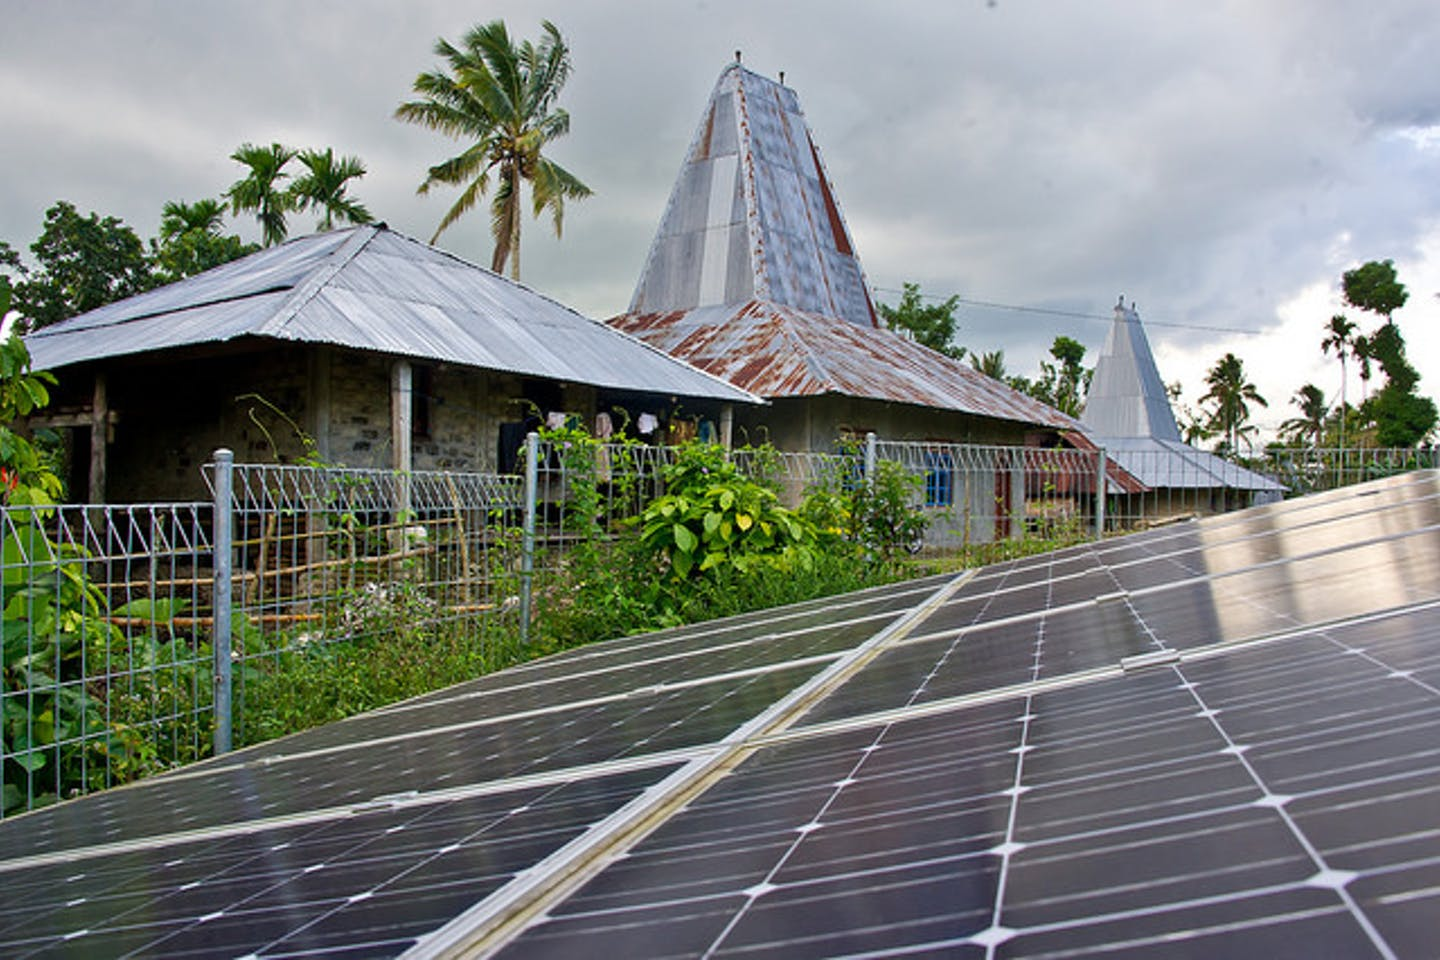 solar powers Indo village